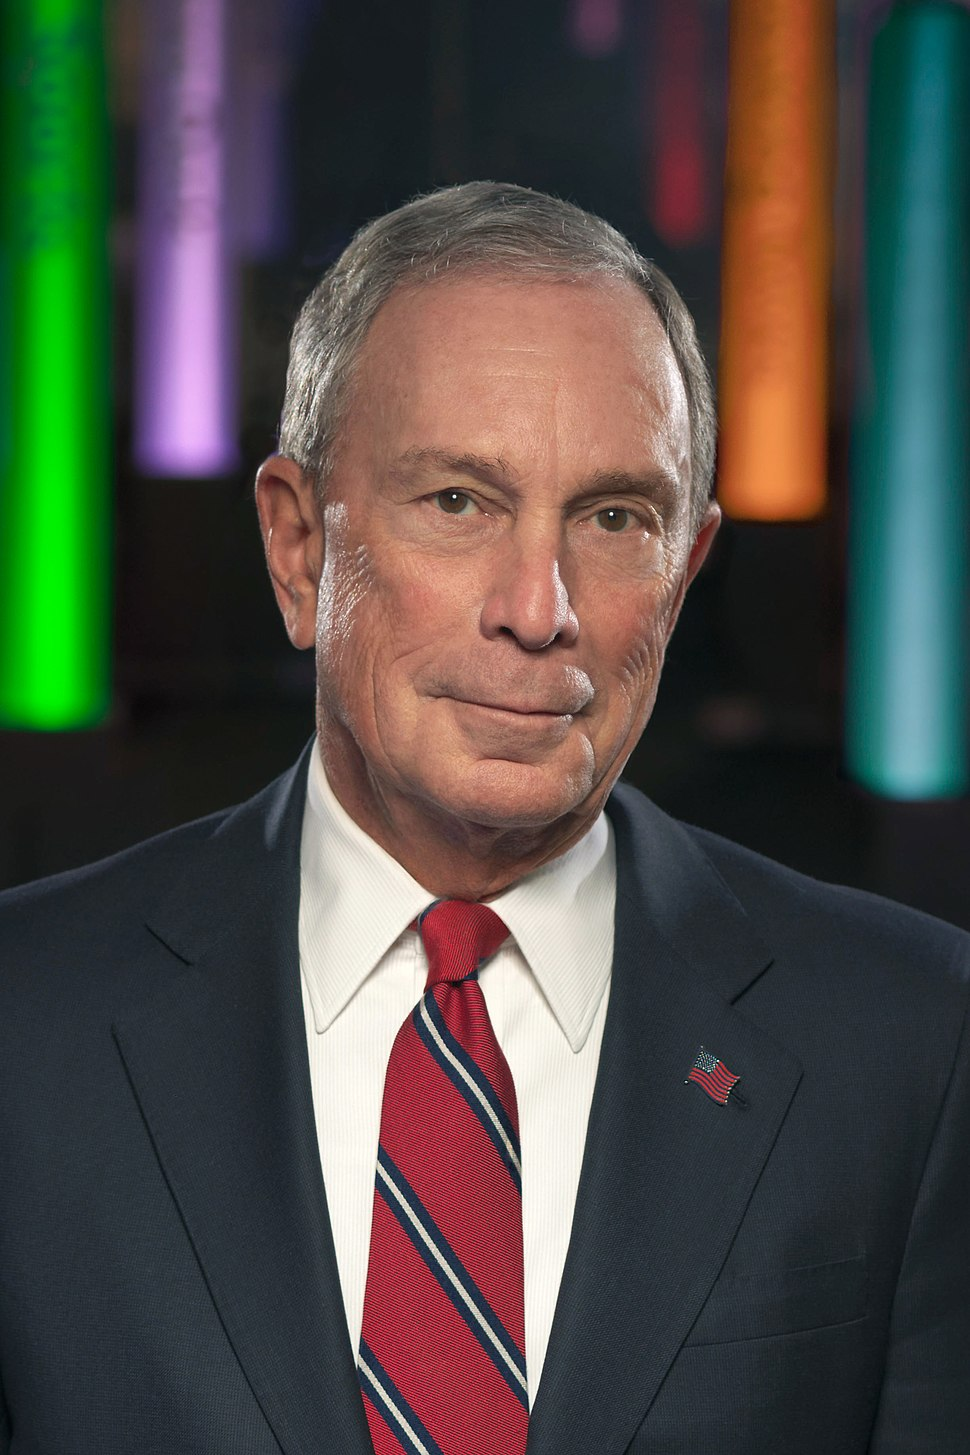 Mike Bloomberg Headshot